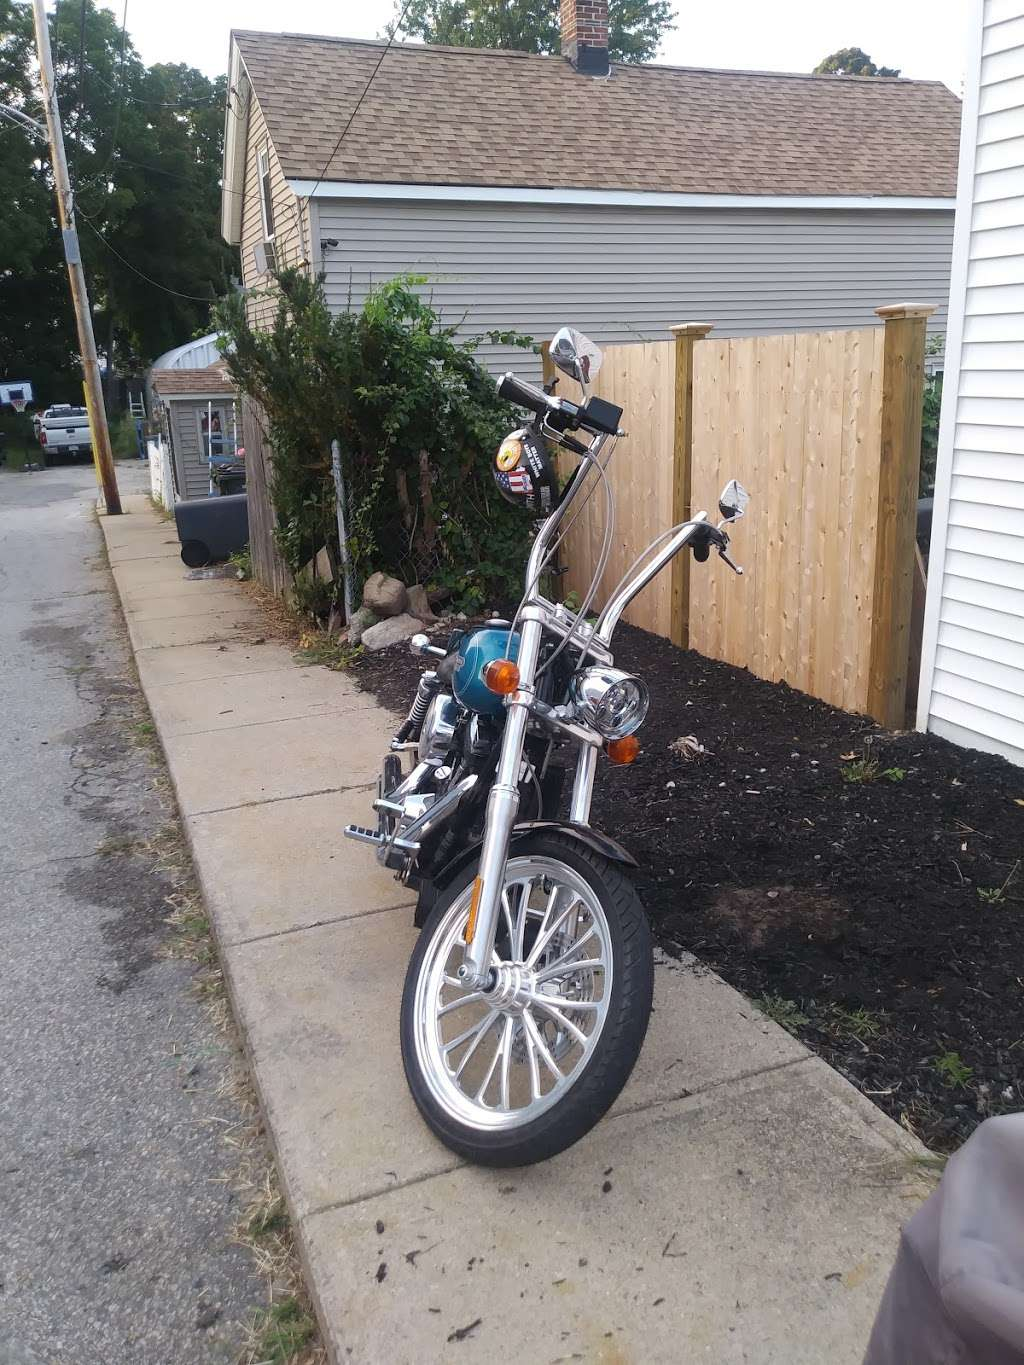 Hairys Cycles - store    Photo 4 of 4   Address: 5 Central St, Newbury, MA 01922, USA   Phone: (978) 948-5010